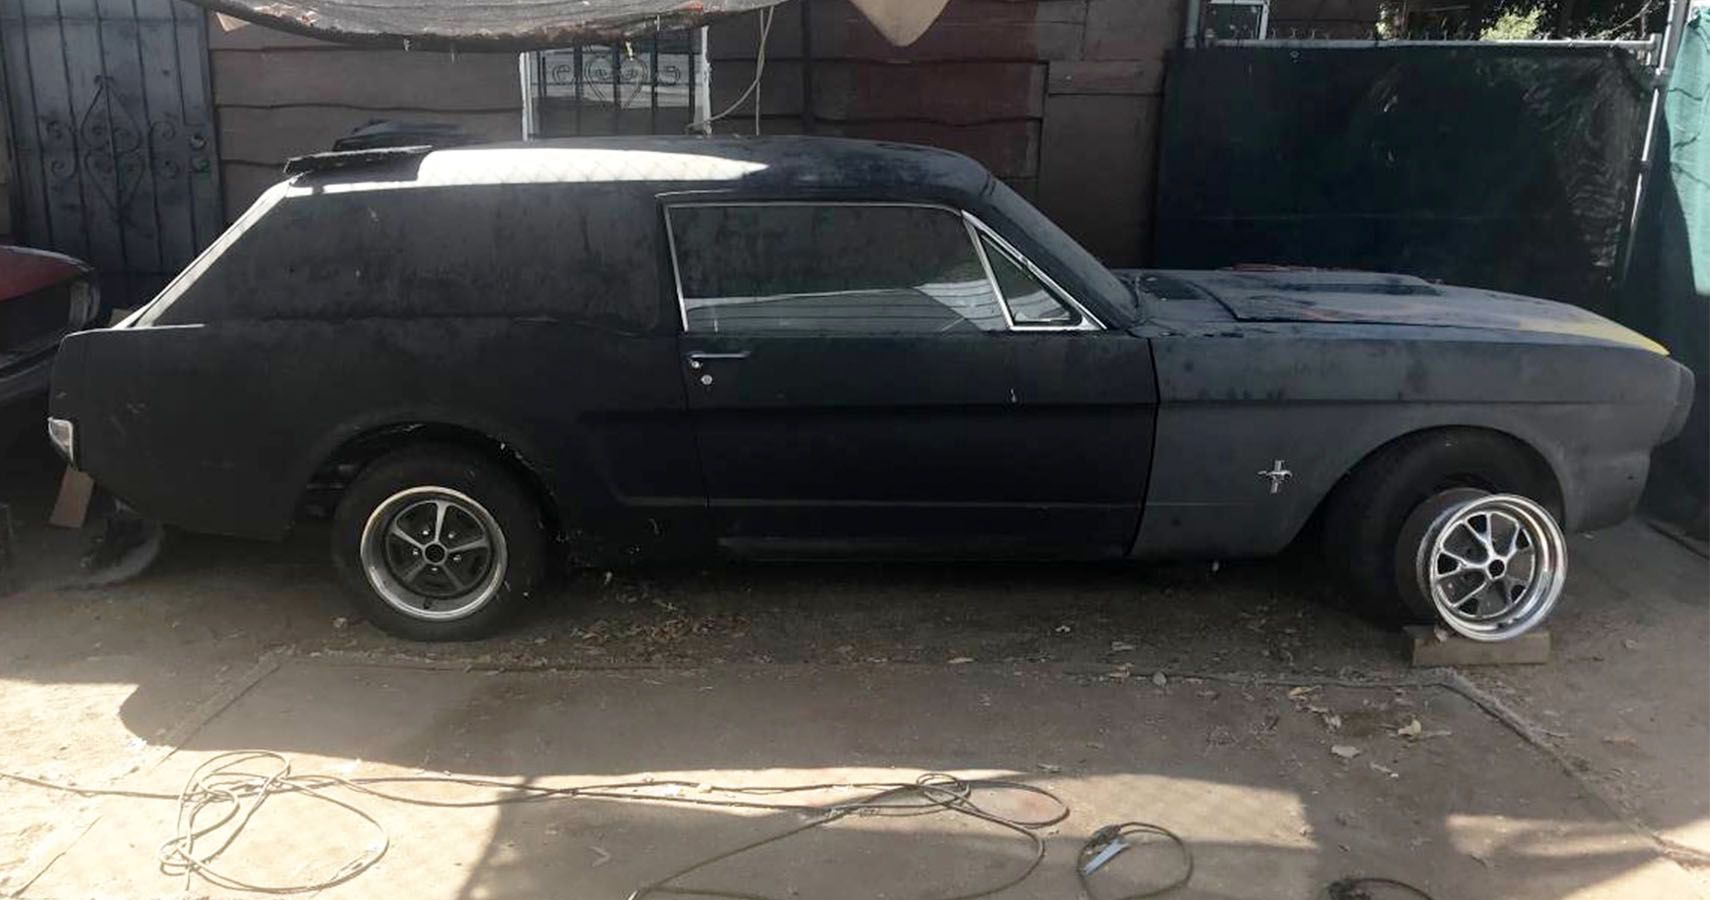 This Bizarre Mustang Station Wagon Project On Craigslist Is A Serious Head-Scratcher